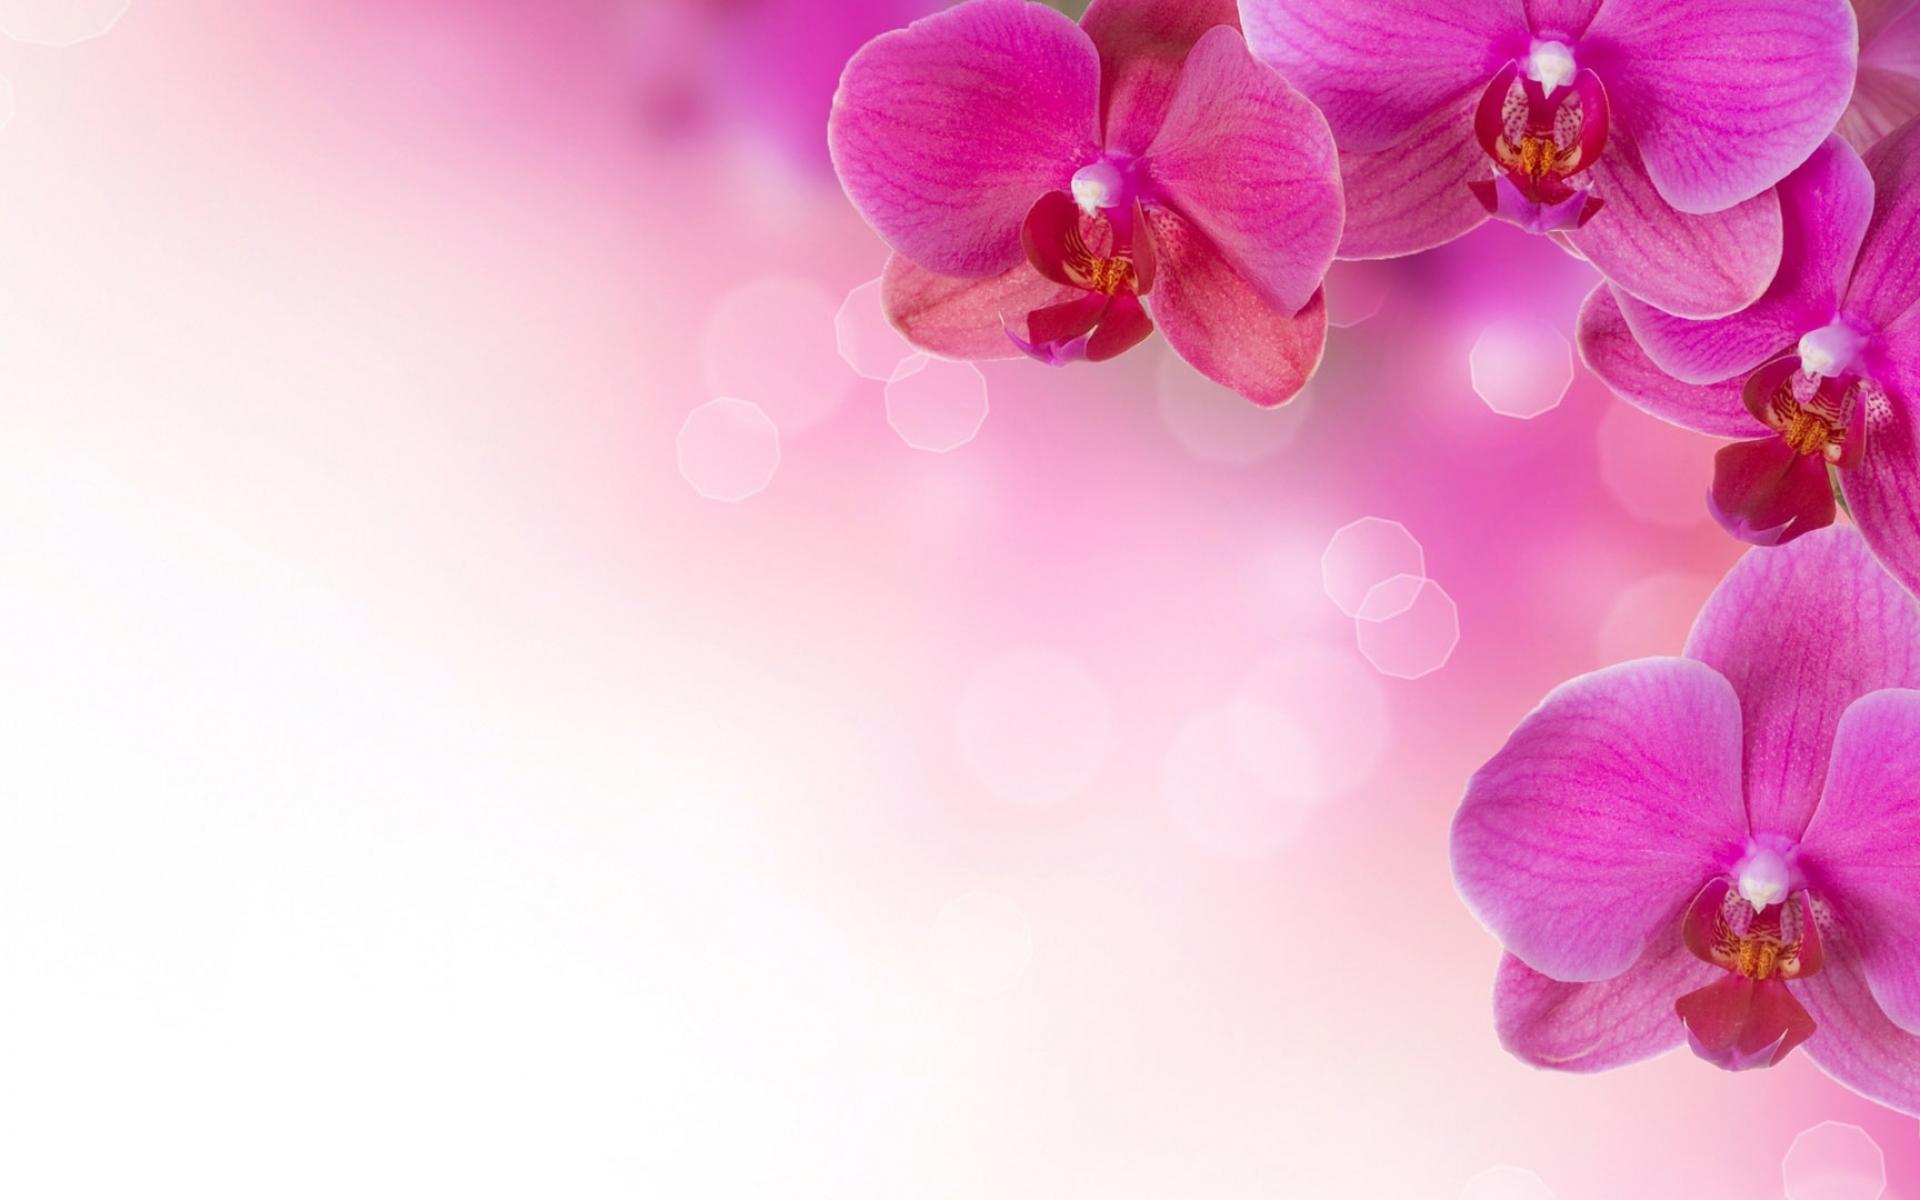 Pink flower backgrounds wallpaper cave wallpapers for pink flower backgrounds mightylinksfo